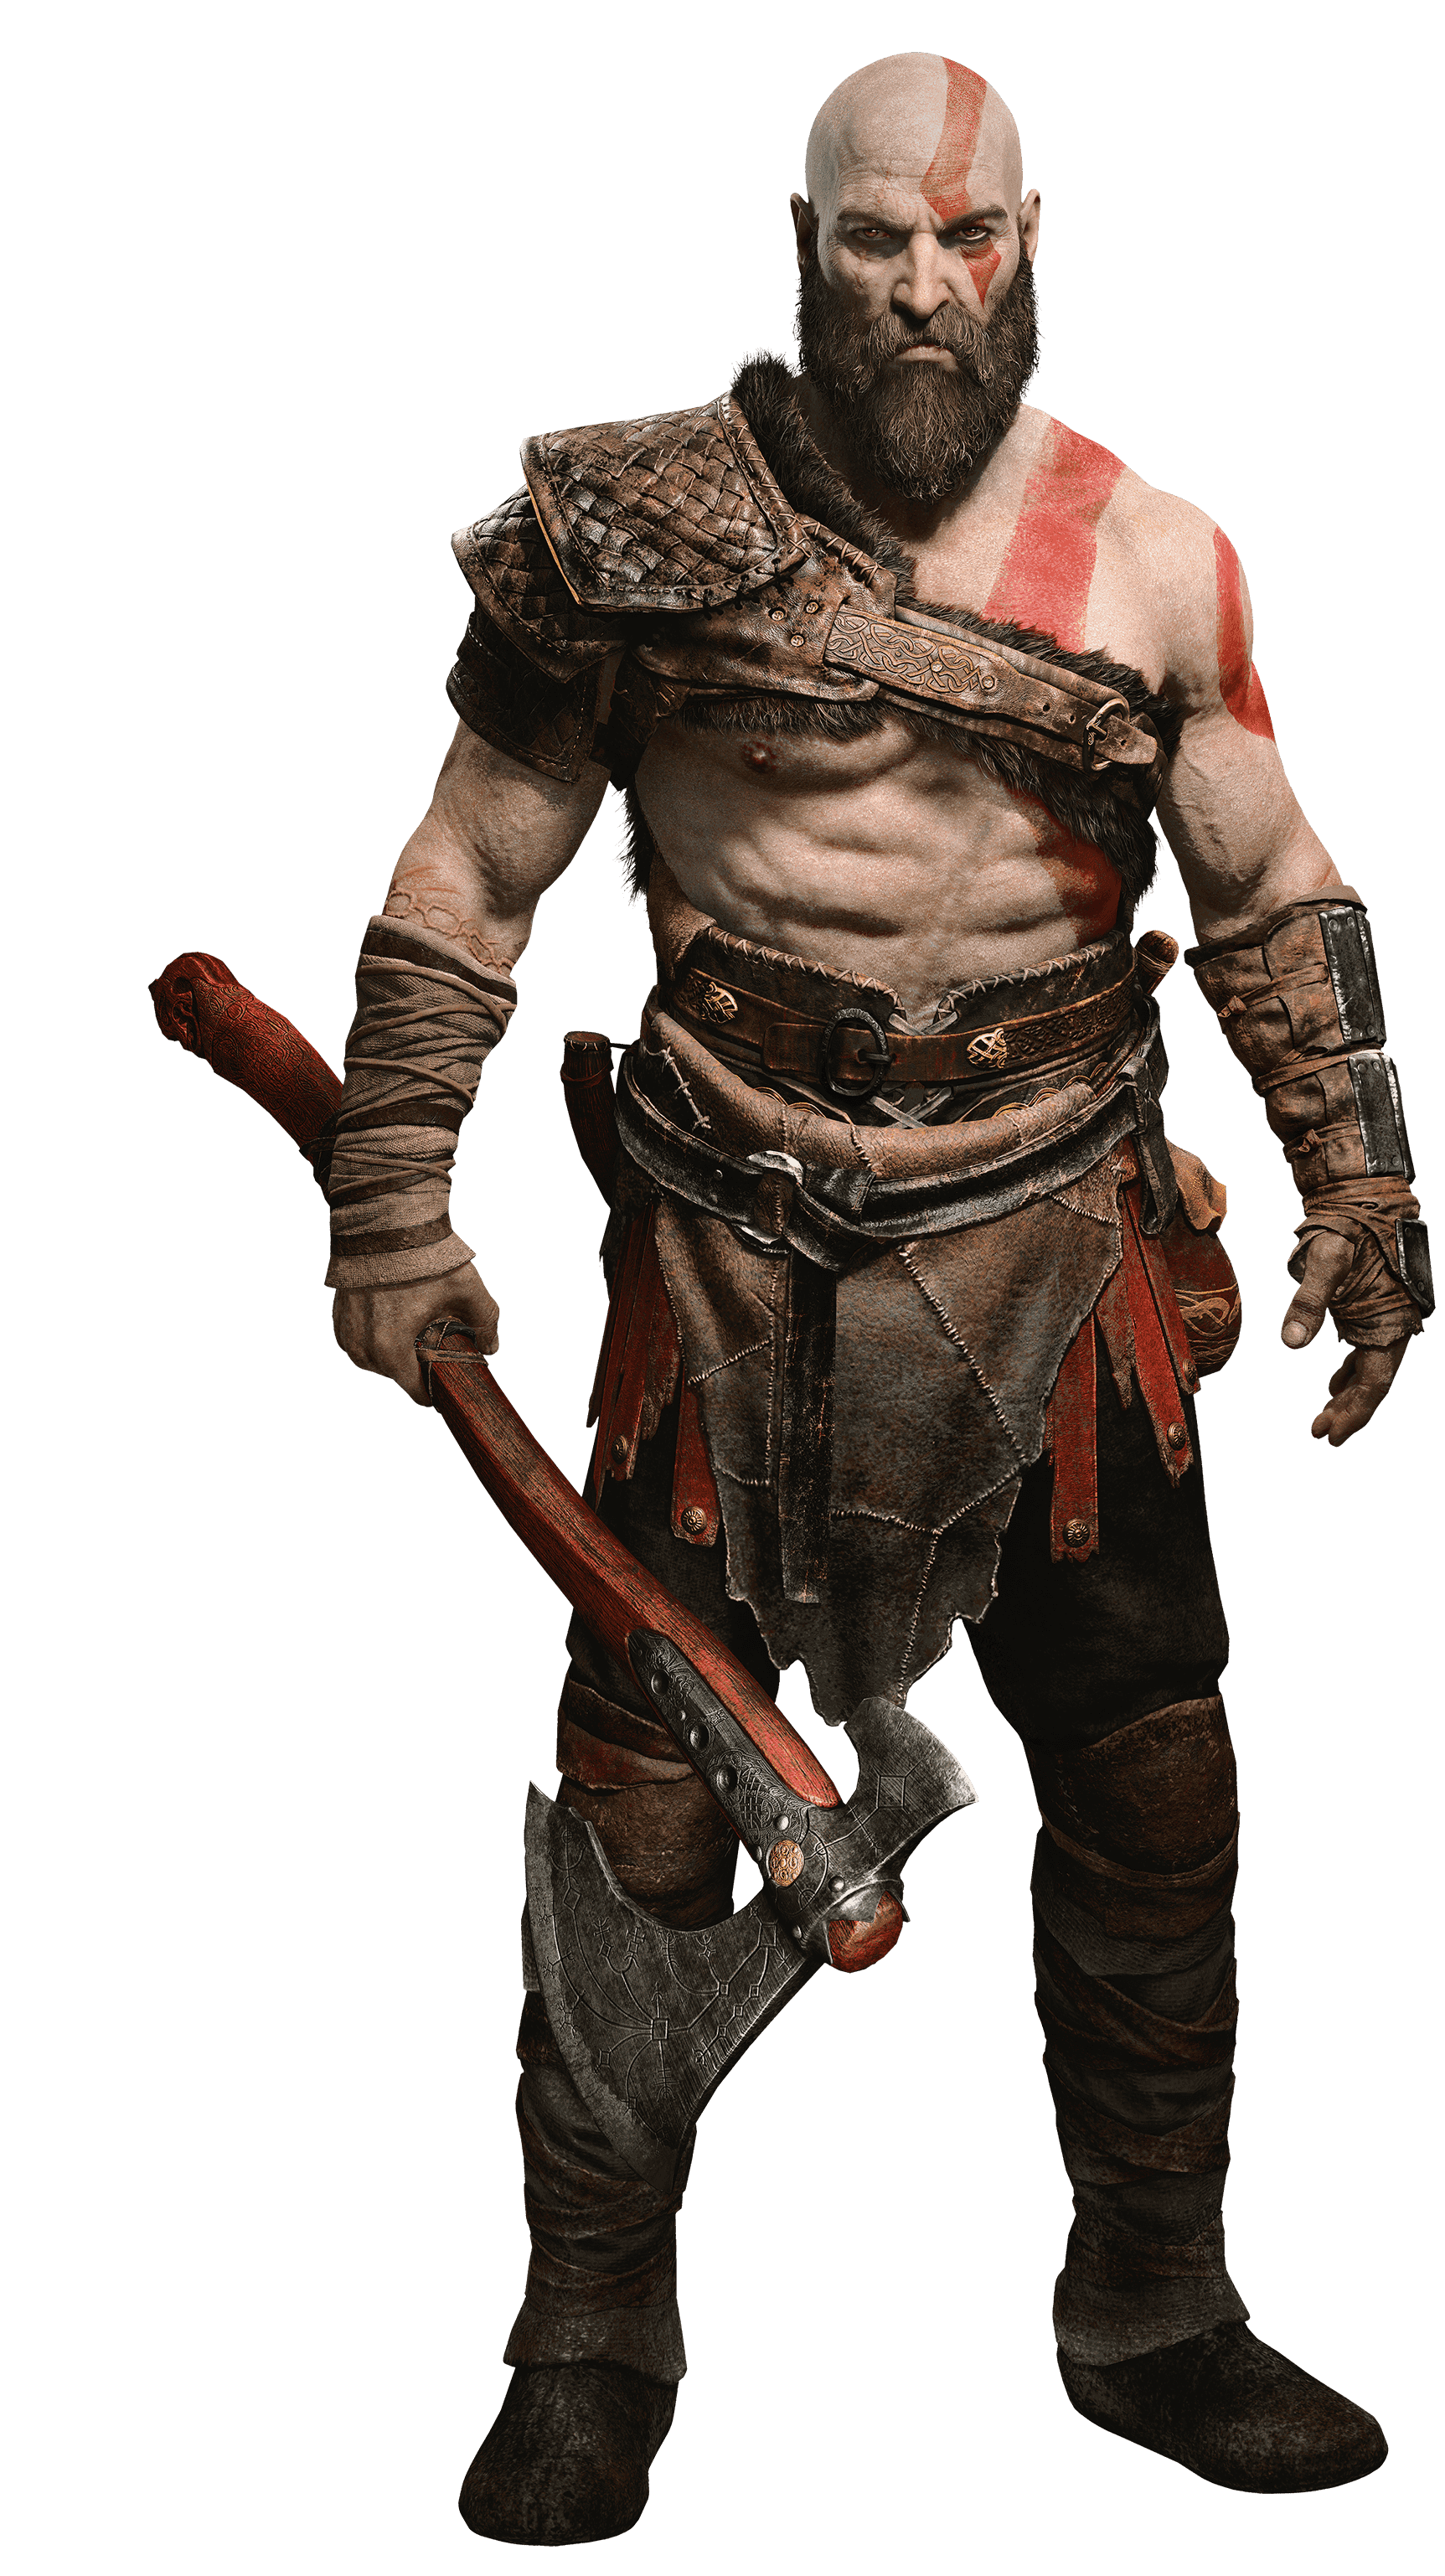 Kratos god of war ps4 png. Image i found these